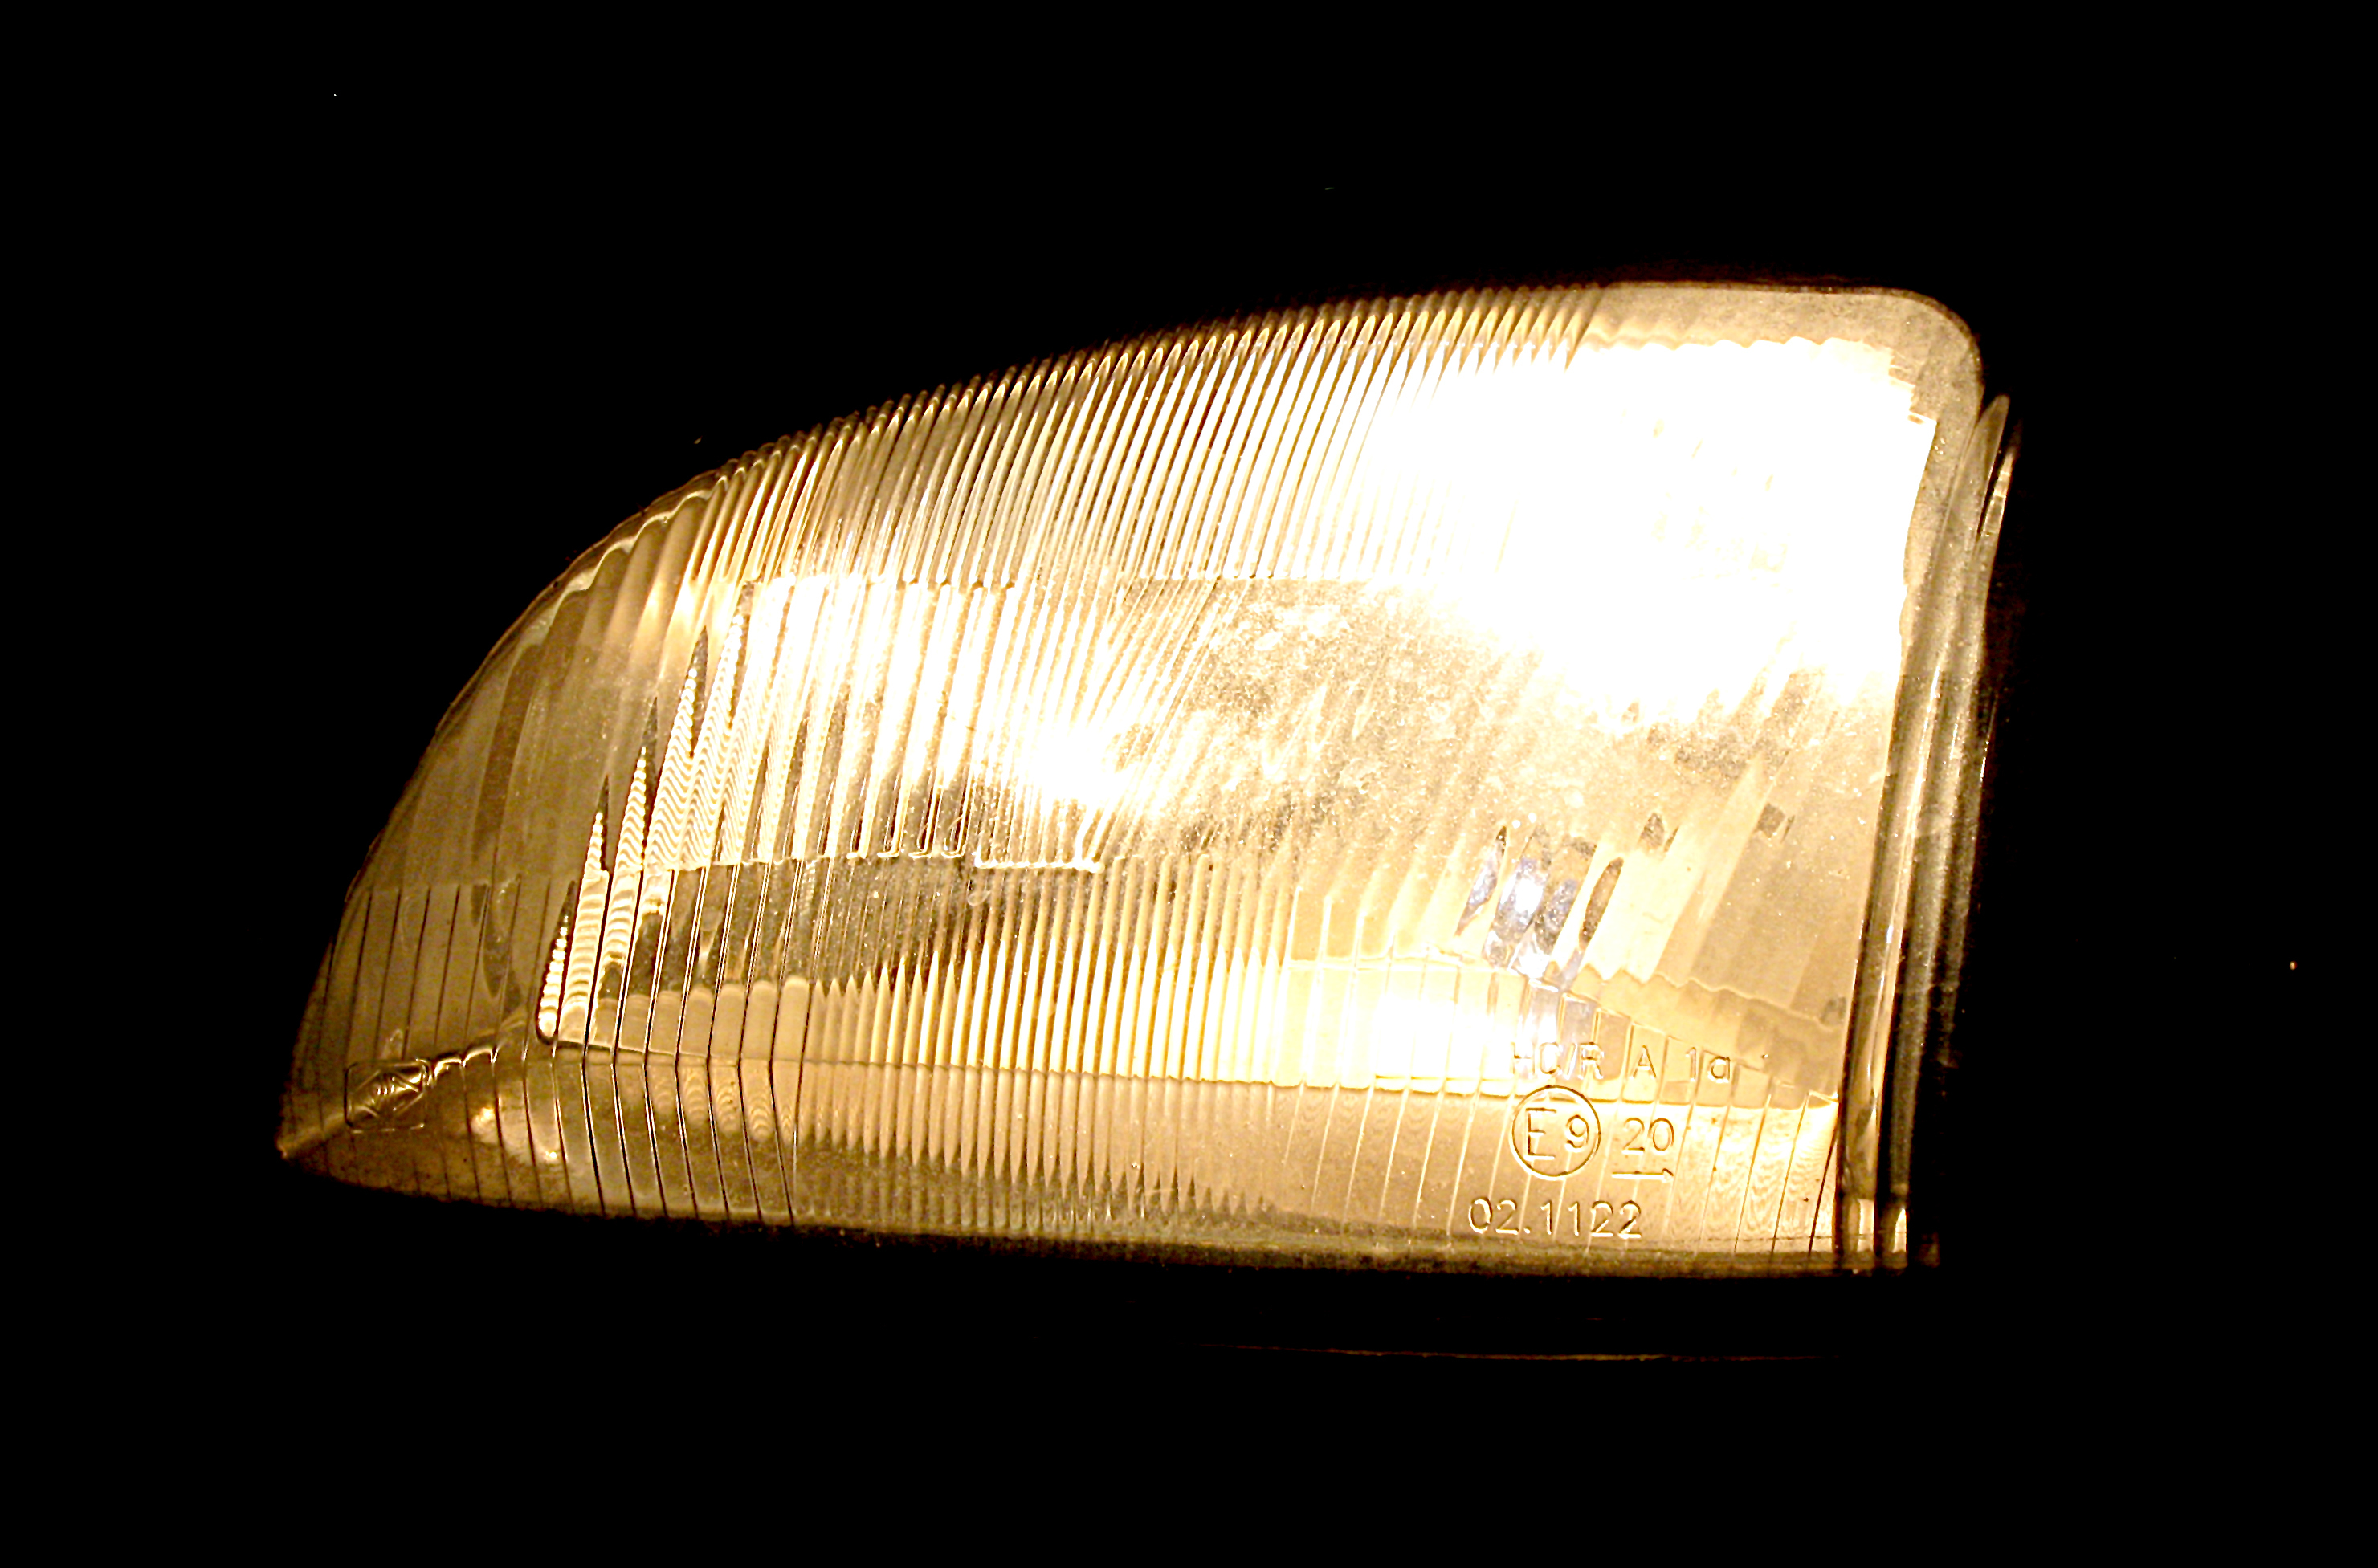 Yellowed headlight